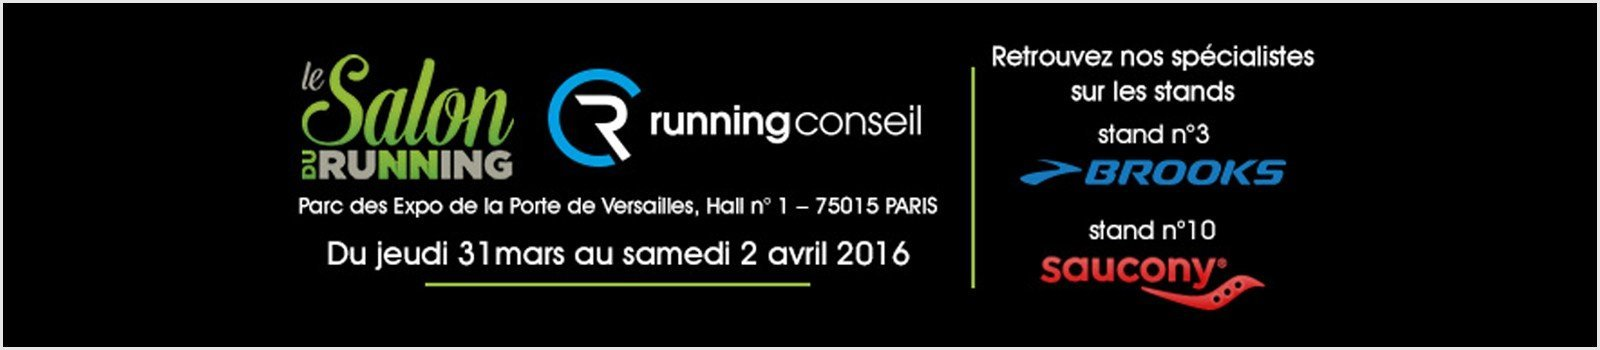 Le salon du running